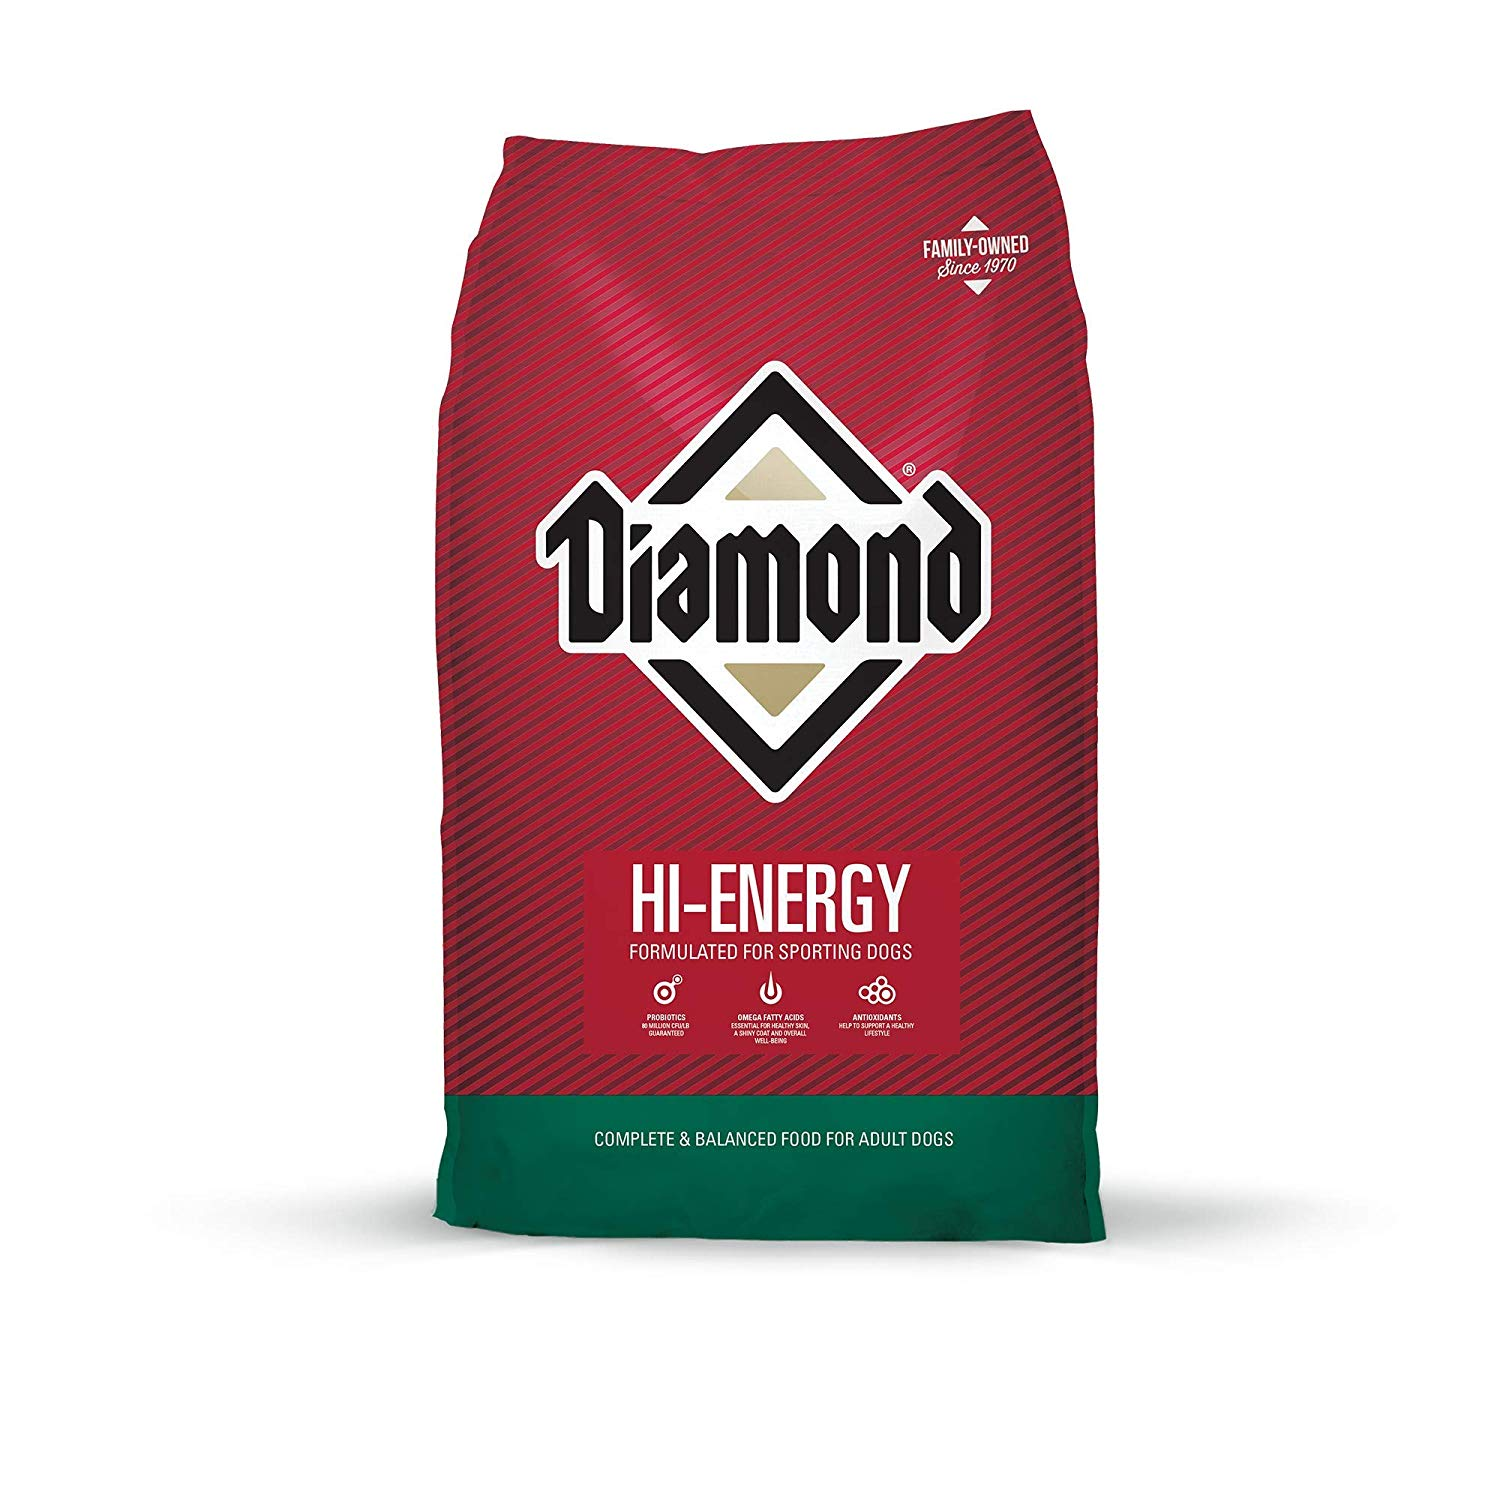 Diamond Premium Recipe Hi-Energy Complete And Balanced Dry Dog Food For Sport Dog, 50Lb - $32.99 at Amazon + FS with Prime